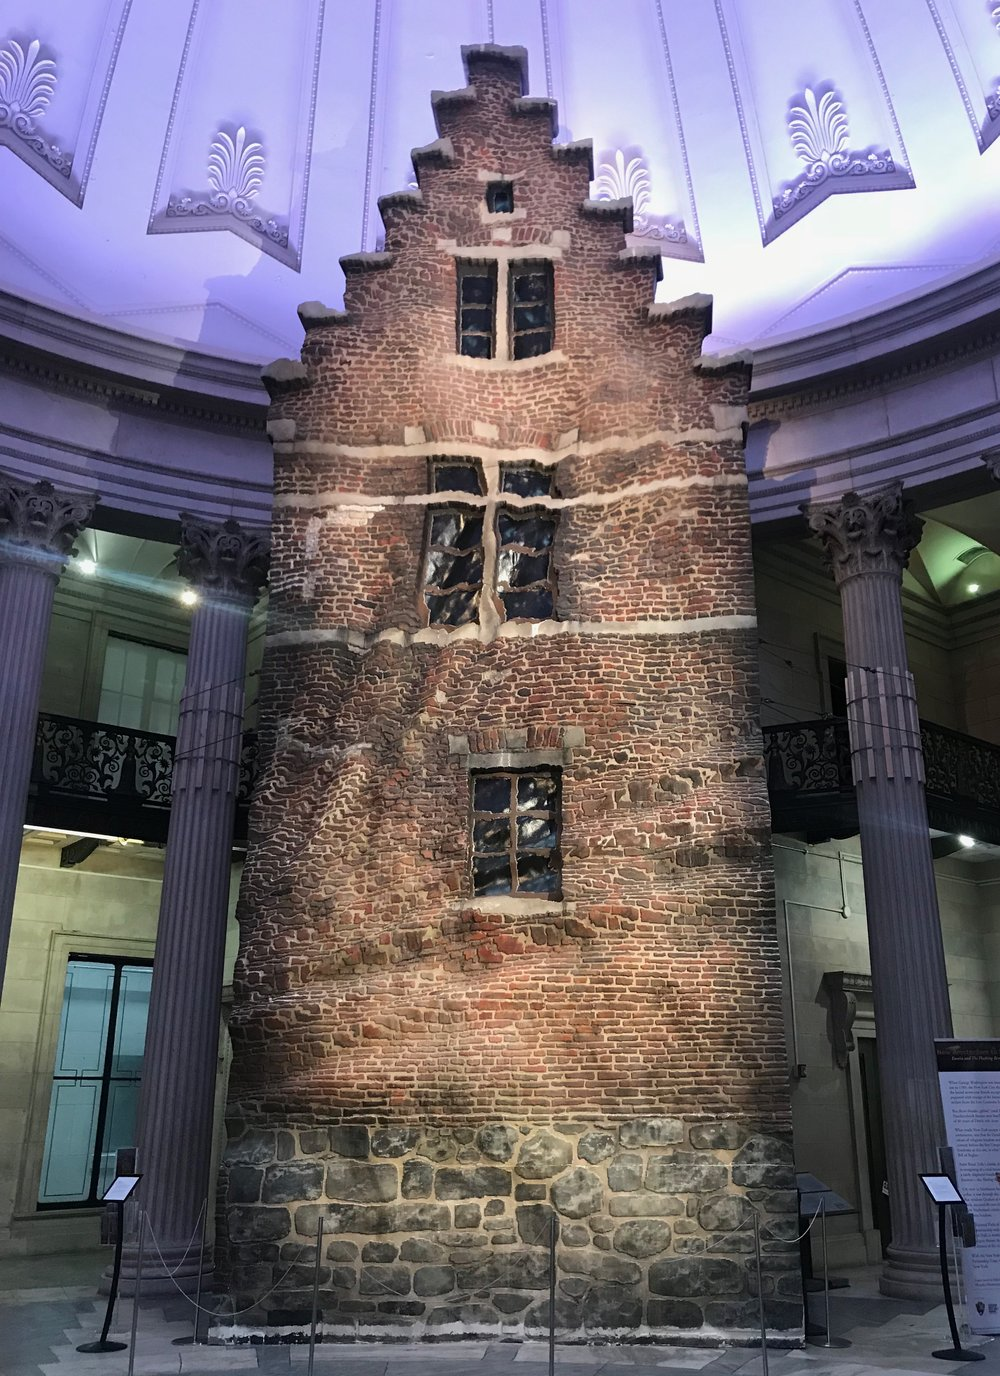 Eureka, by Brian Tolle ,   a 40 foot sculptural facade of a 17th Century canal house installed at Federal Hall National Memorial June 27- September 9, 2018